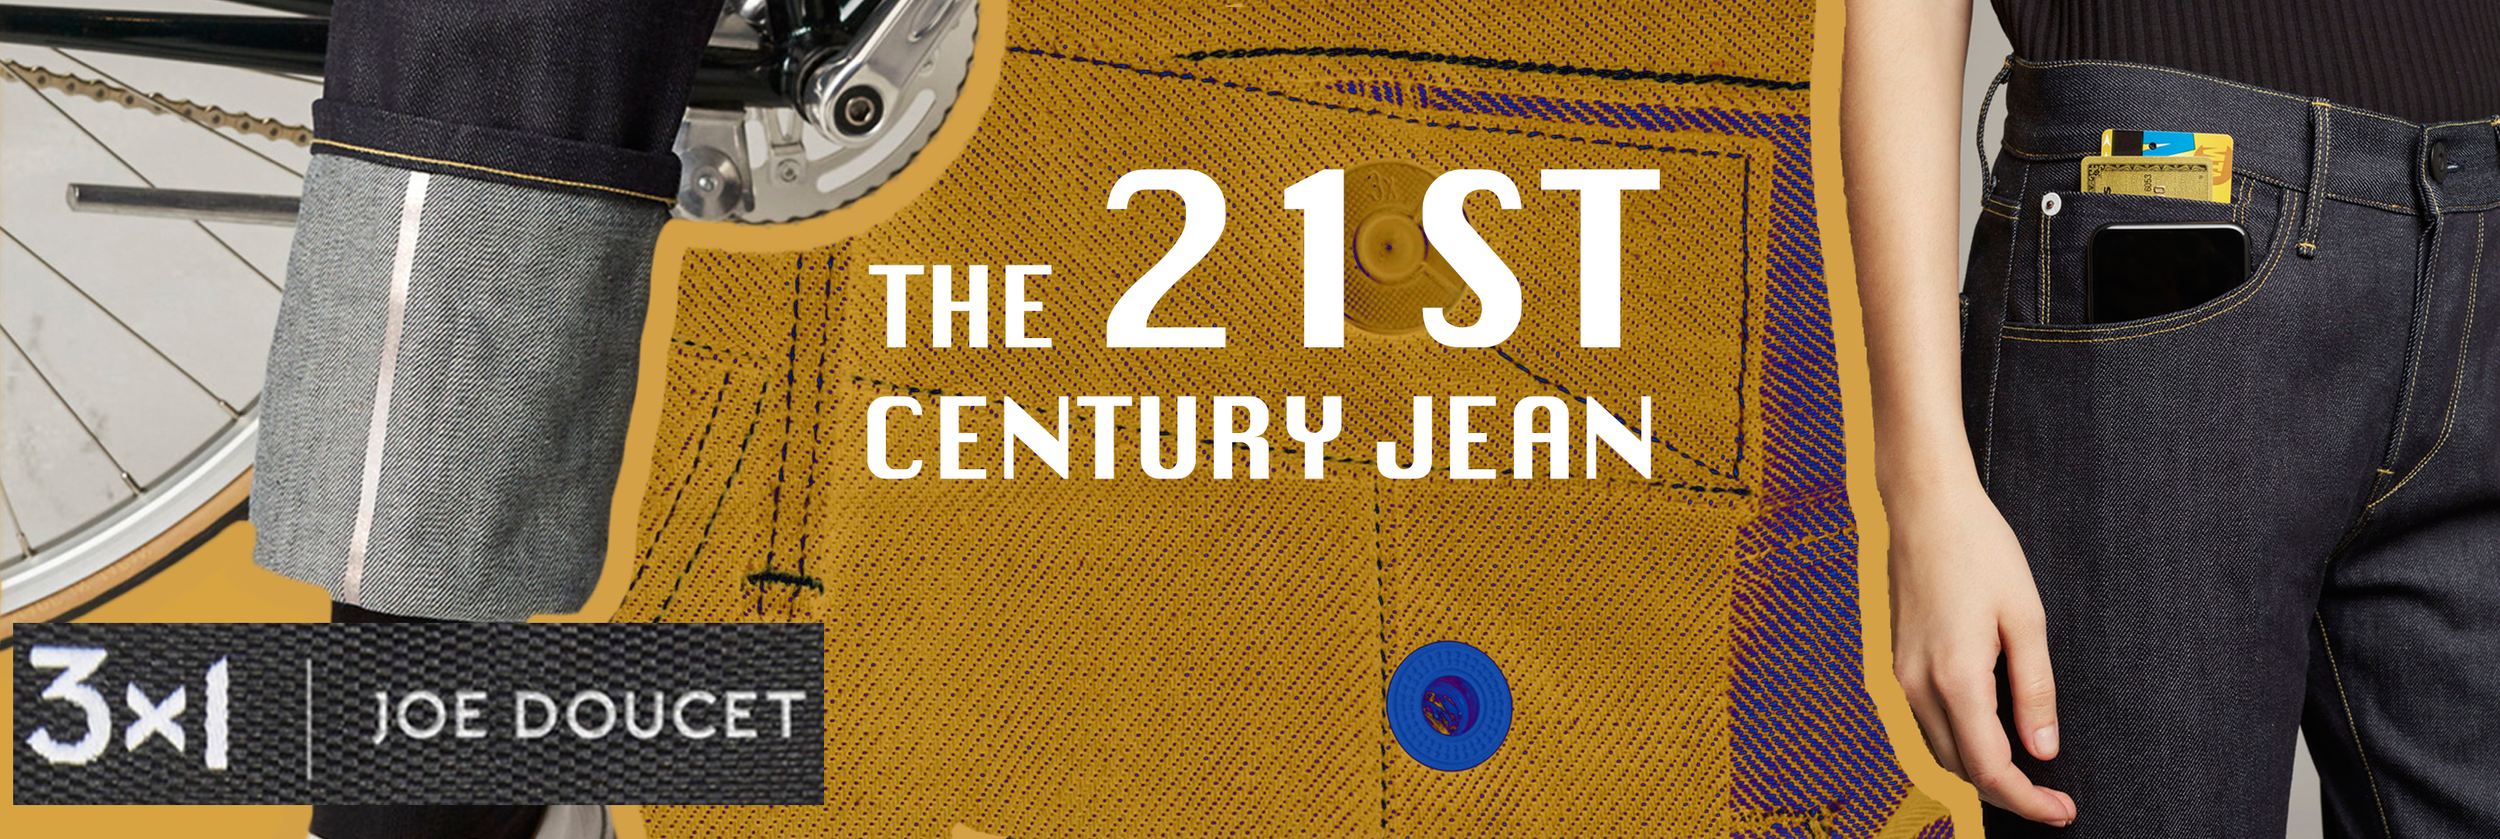 The 21st Century Jean, 3x1 X Joe Doucett